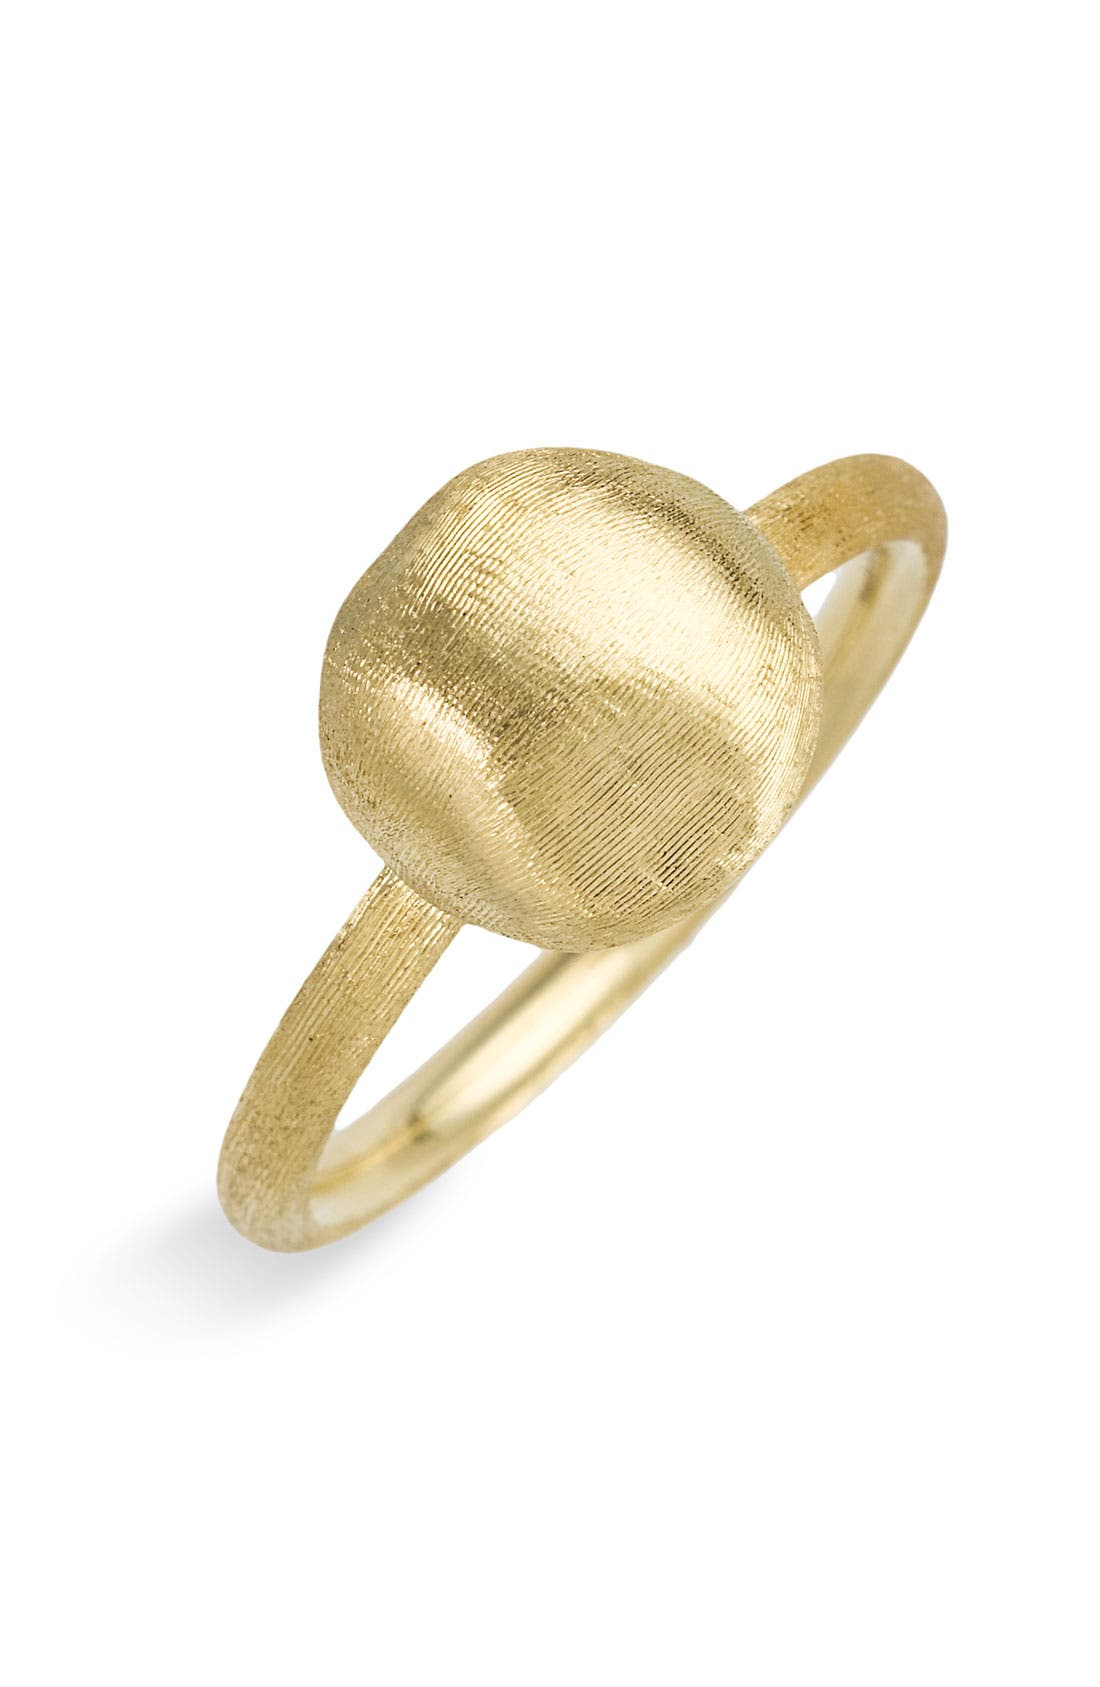 Main Image - Marco Bicego 'Africa Gold' Ball Ring